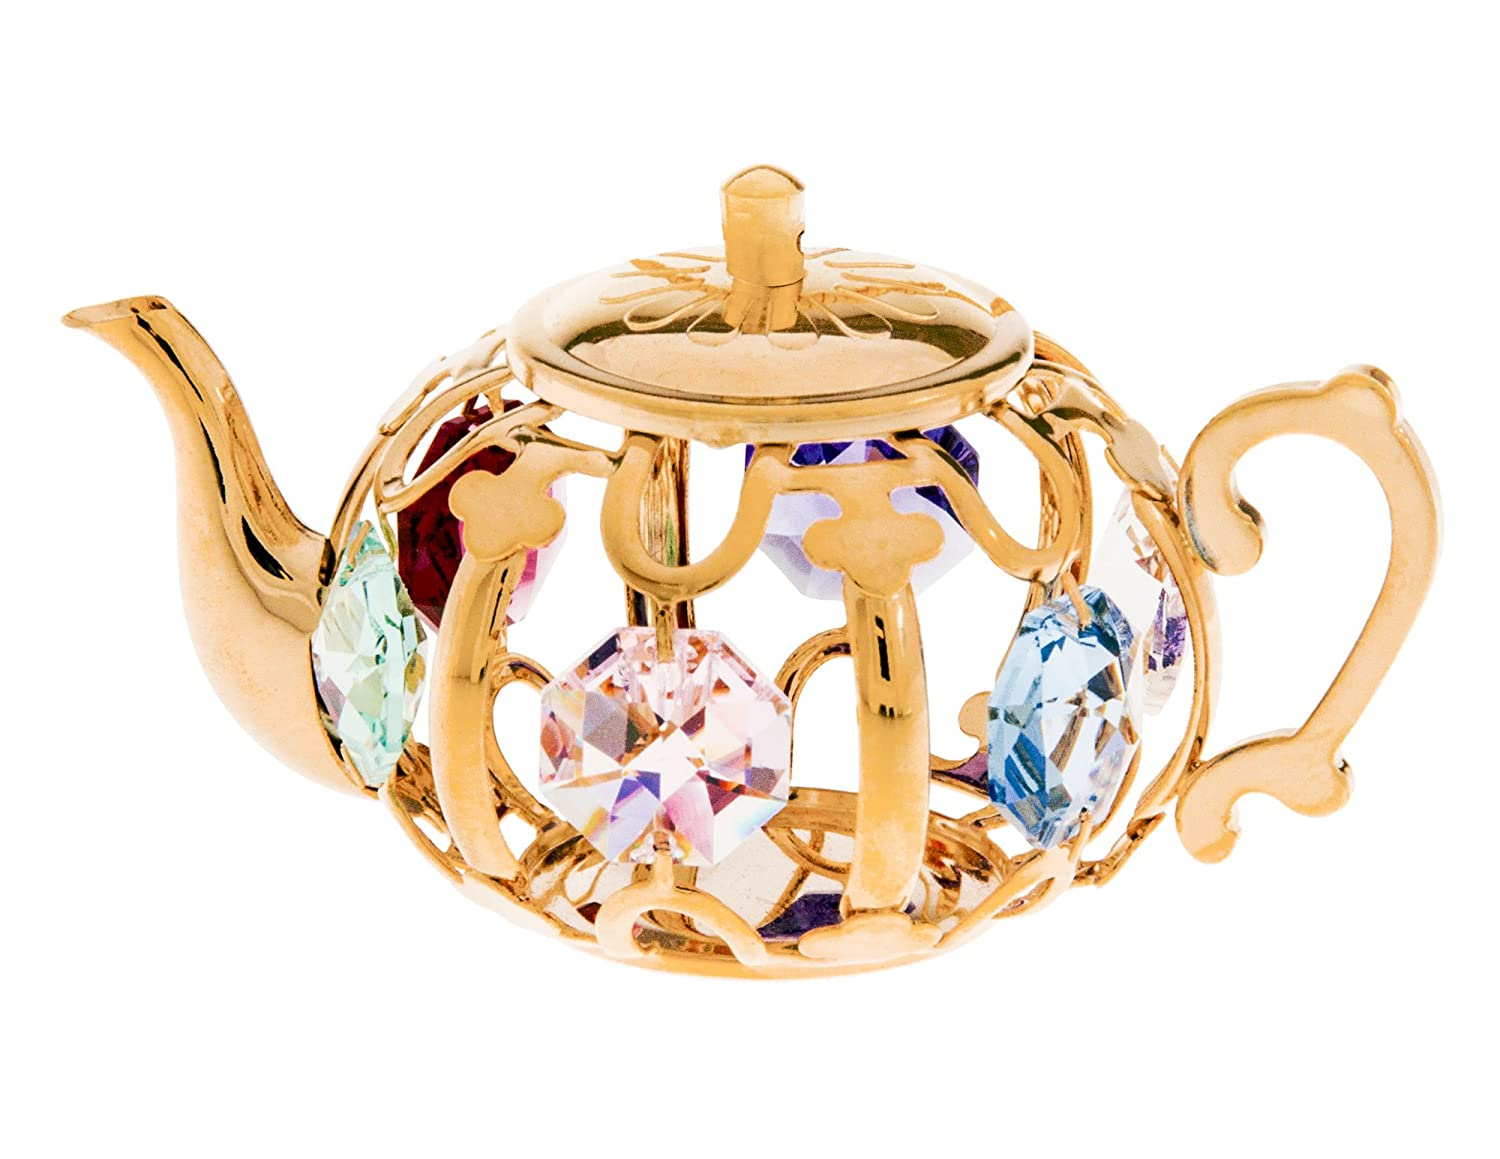 Amazon.com: Teapot 24k Gold Plated Metal Figurine with Clear Spectra ...